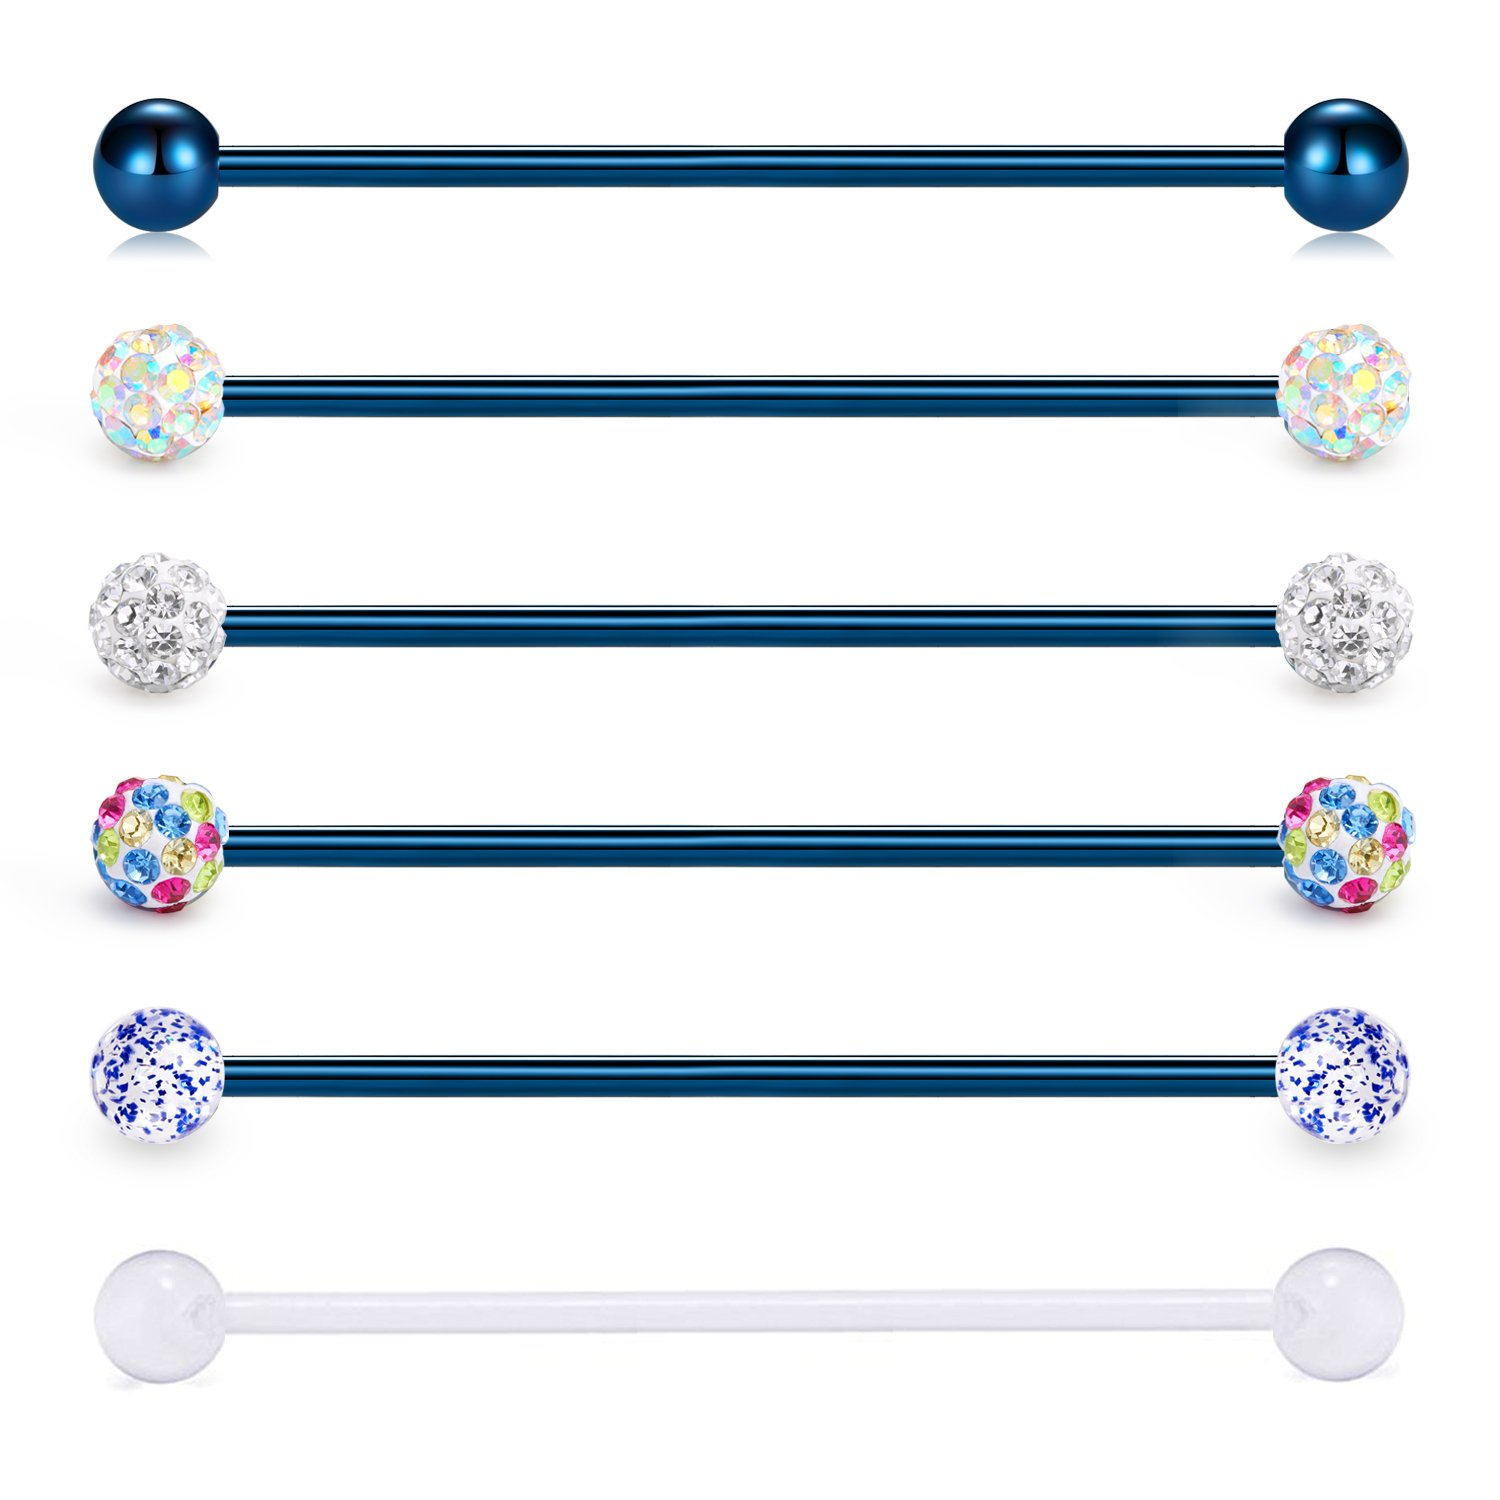 vcmart Industrial Barbell 14G 6PCS 38mm Stainless Steel Ear Cartilage Helix-Conch Piercing Bar 1 1/2 Inch LGY1881C